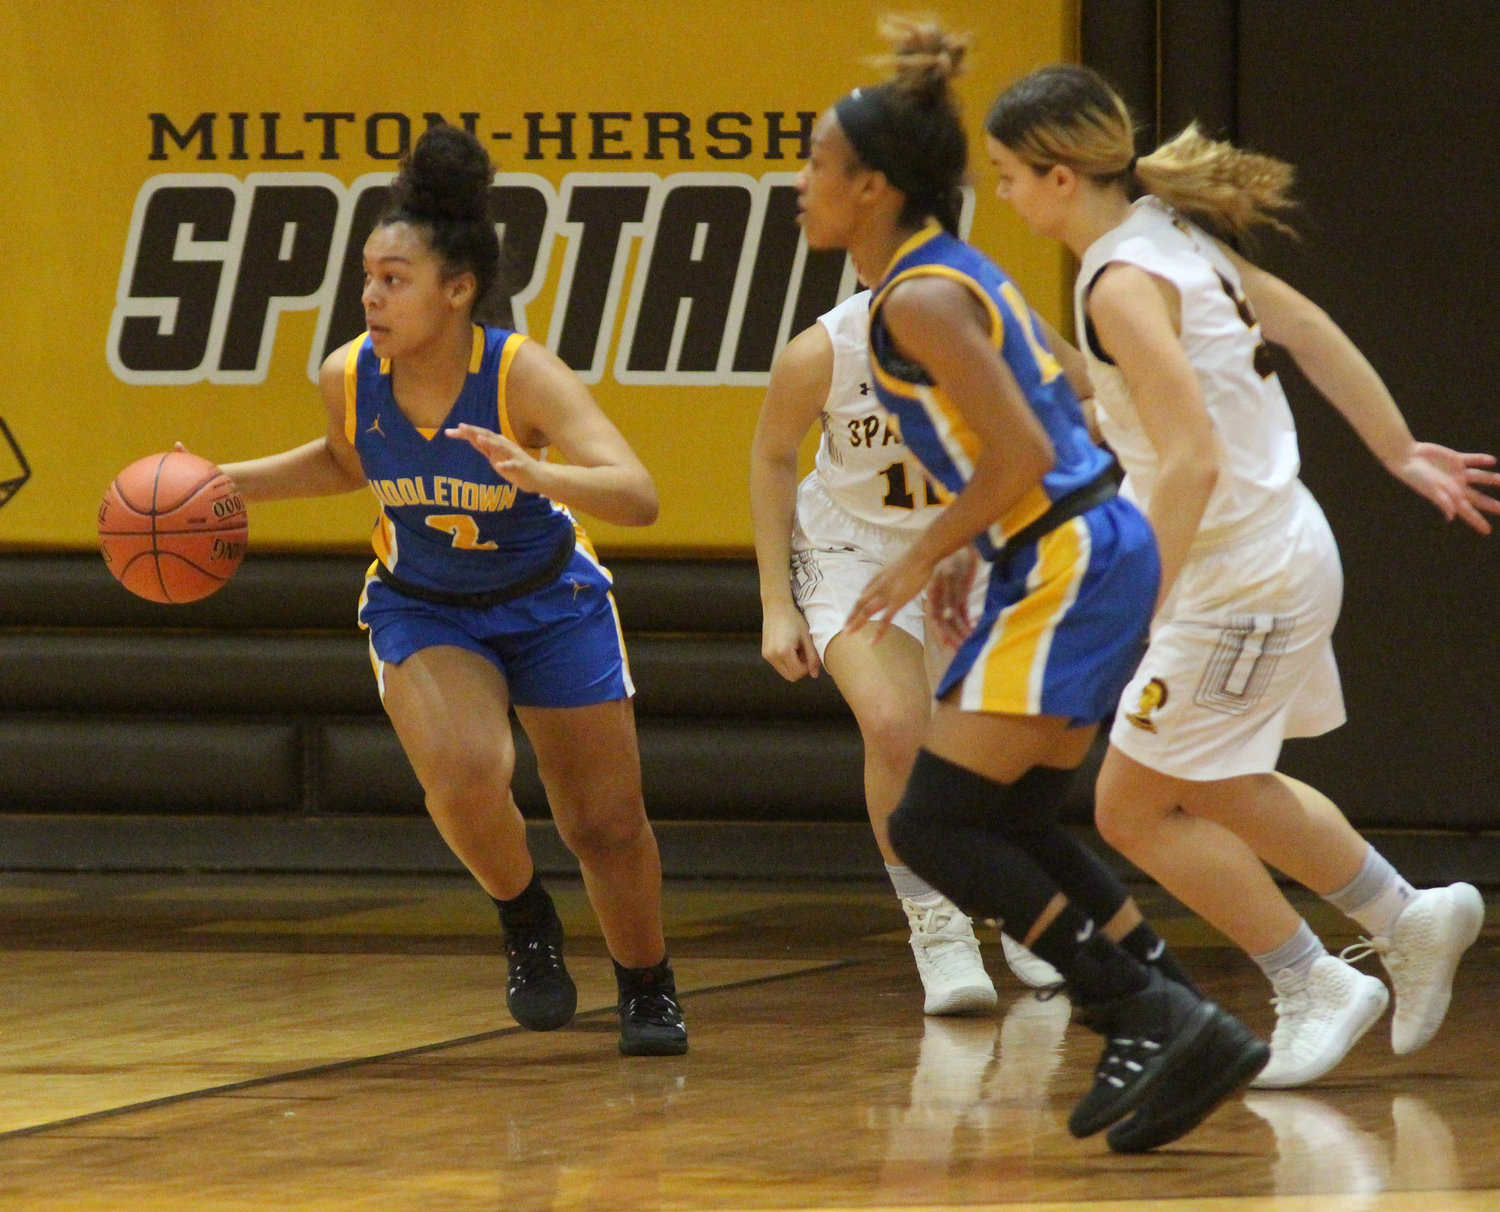 Makayla Claggett dribbles up the court Feb. 4 against Milton Hershey.